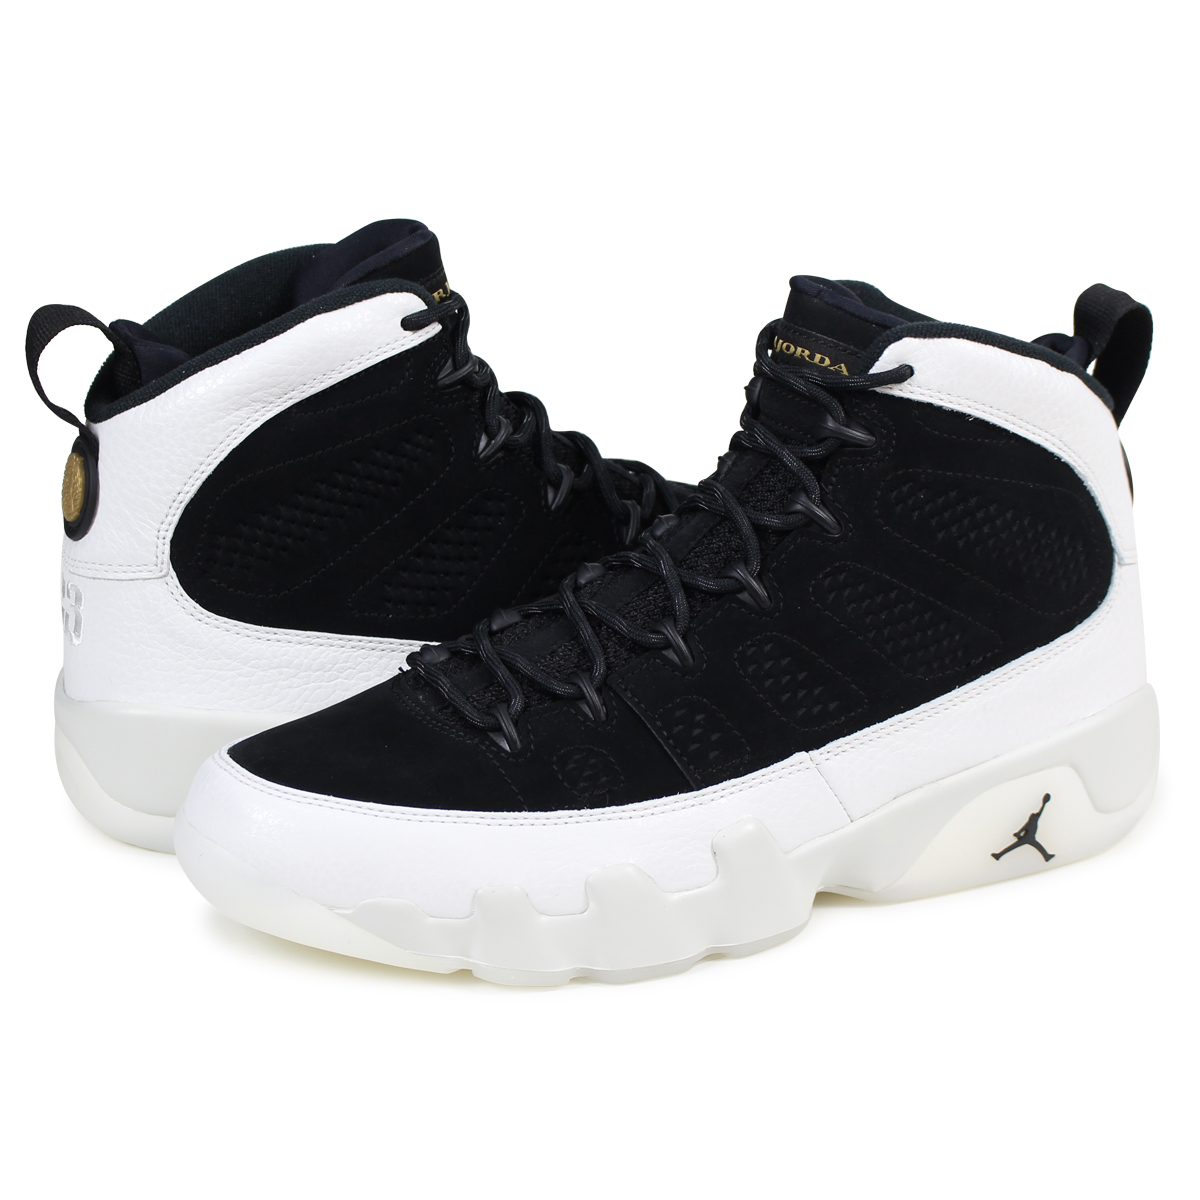 fd91be6925ddb8 Whats up Sports  NIKE AIR JORDAN 9 RETRO CITY OF FLIGHT Nike Air ...